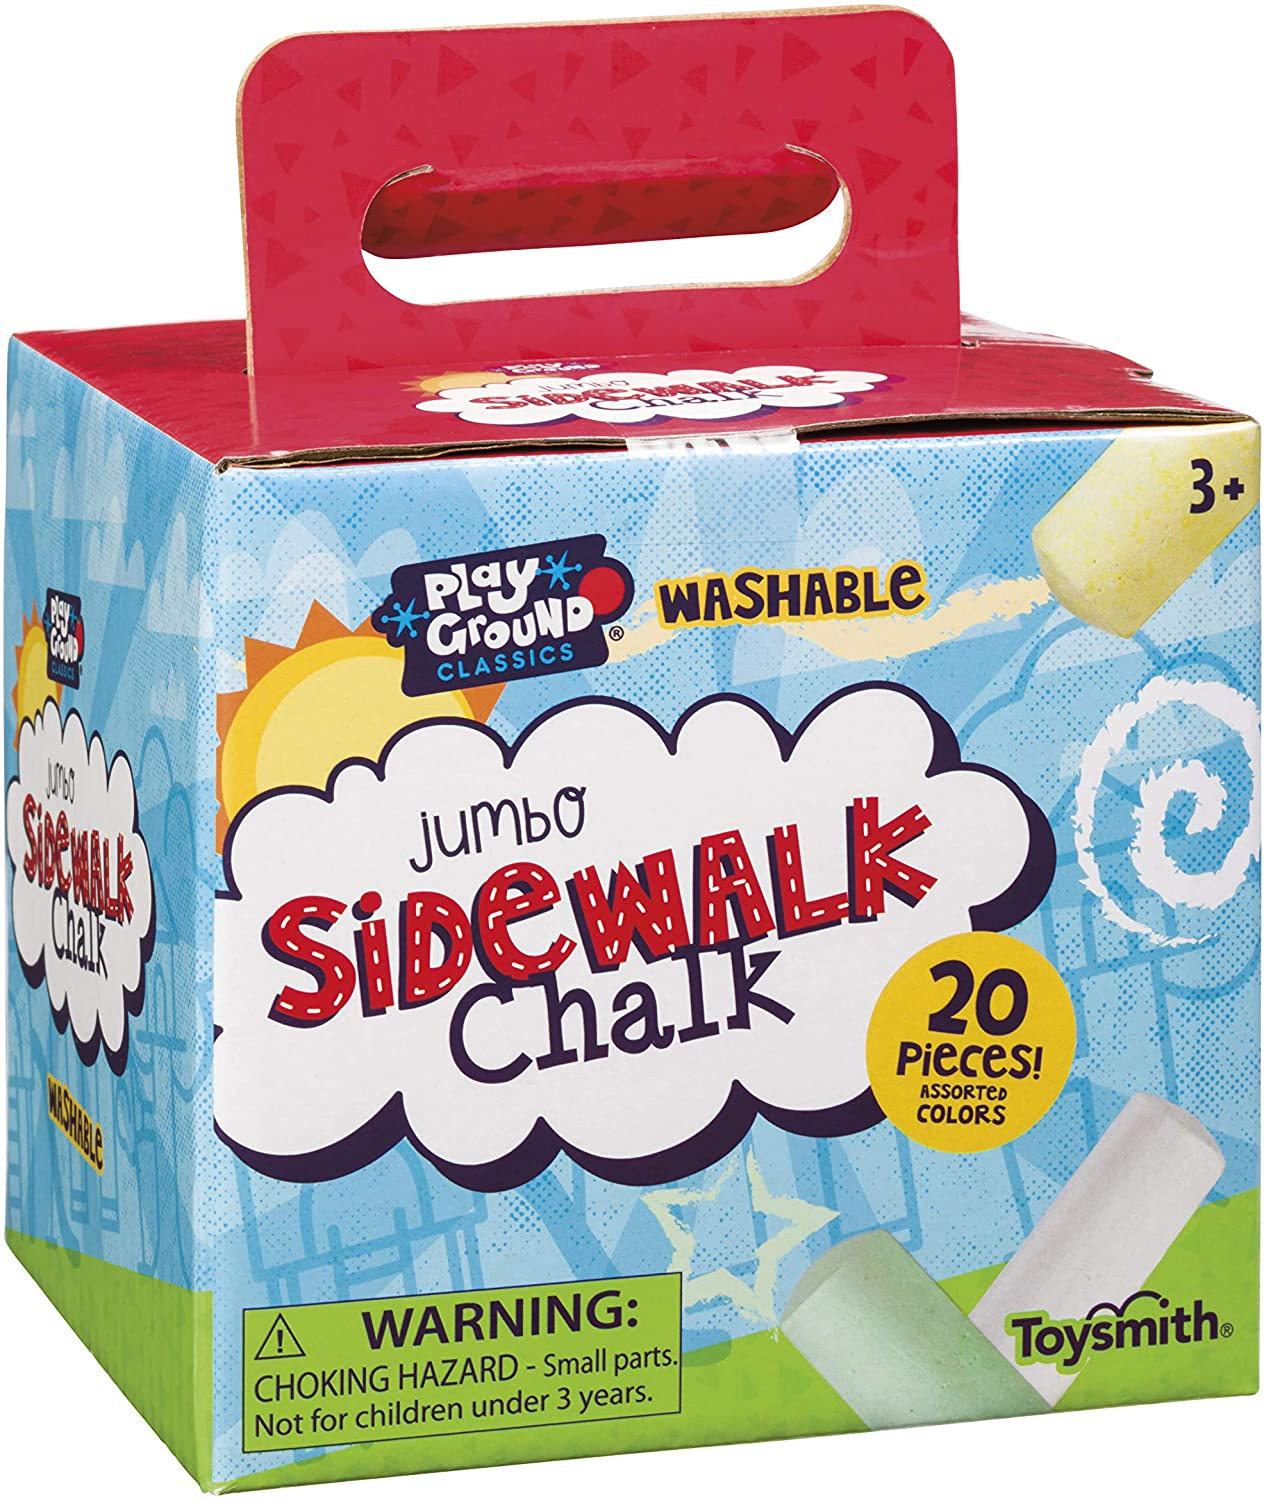 Toysmith Jumbo Sidewalk Chalk, Assorted Colors (Packaging May Vary), Model Number: 2551